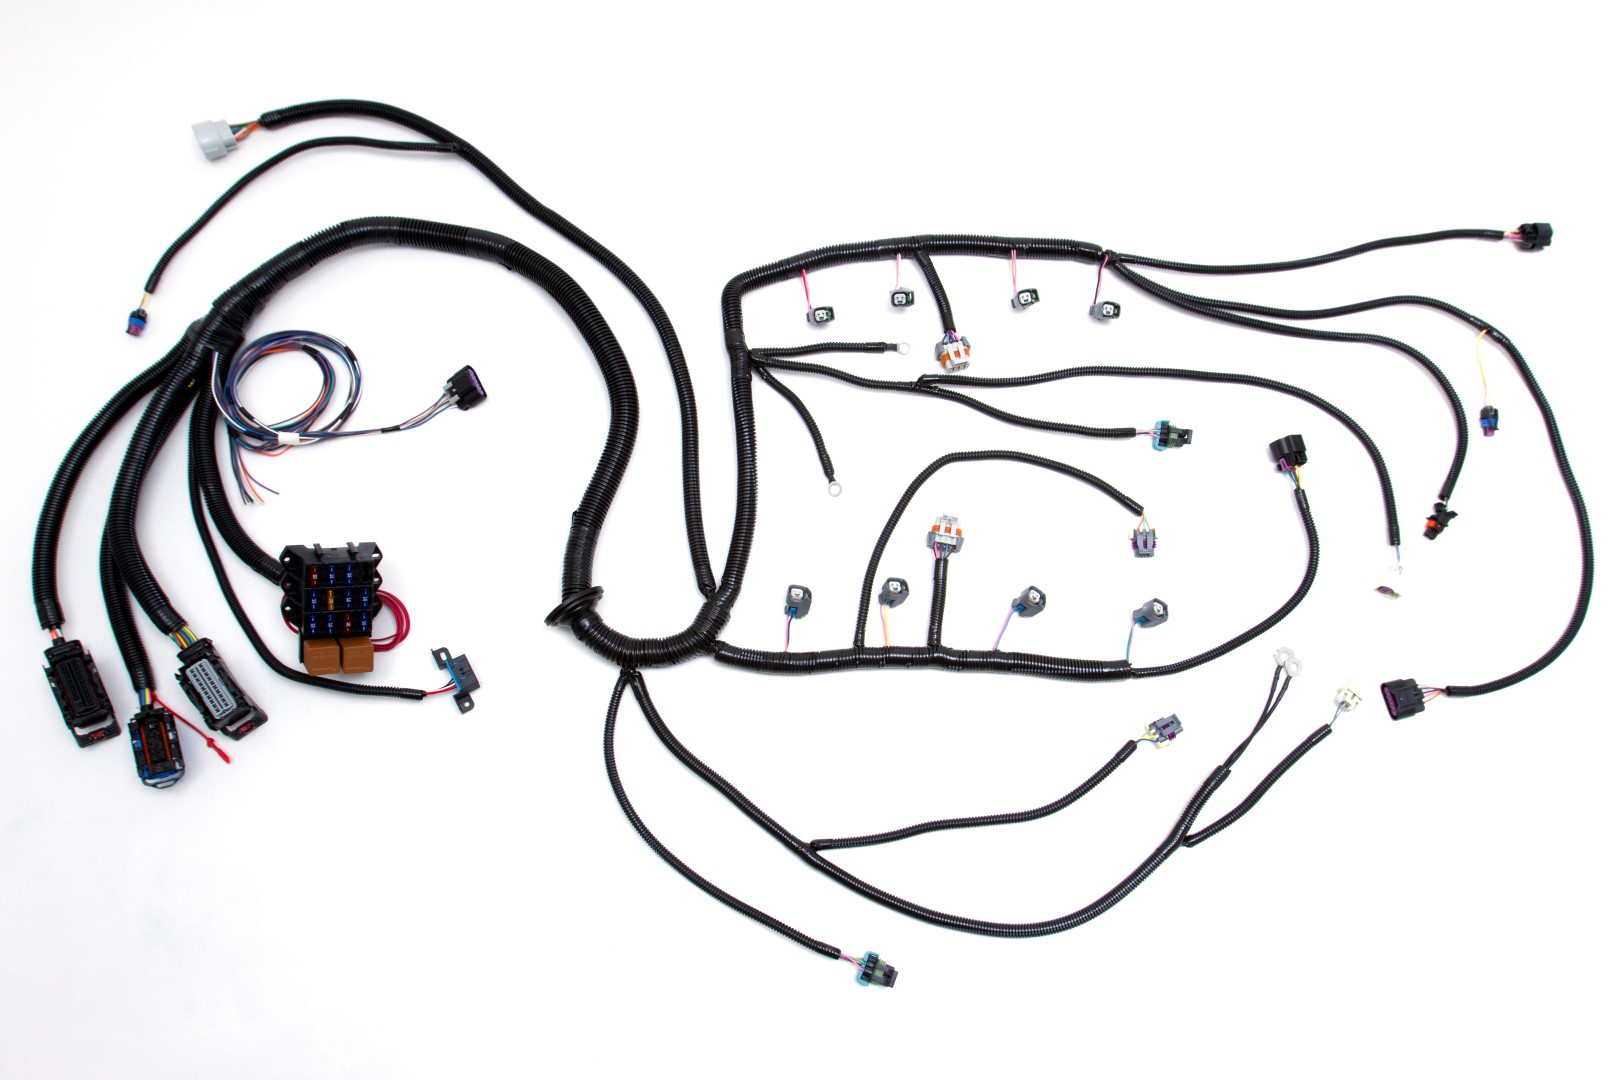 6B12569D615C960145AAE779D1051500 05 '07 ls2 (6 0l) 58x standalone wiring harness w 4l60e custom TH400 Wiring Harness Diagram at panicattacktreatment.co